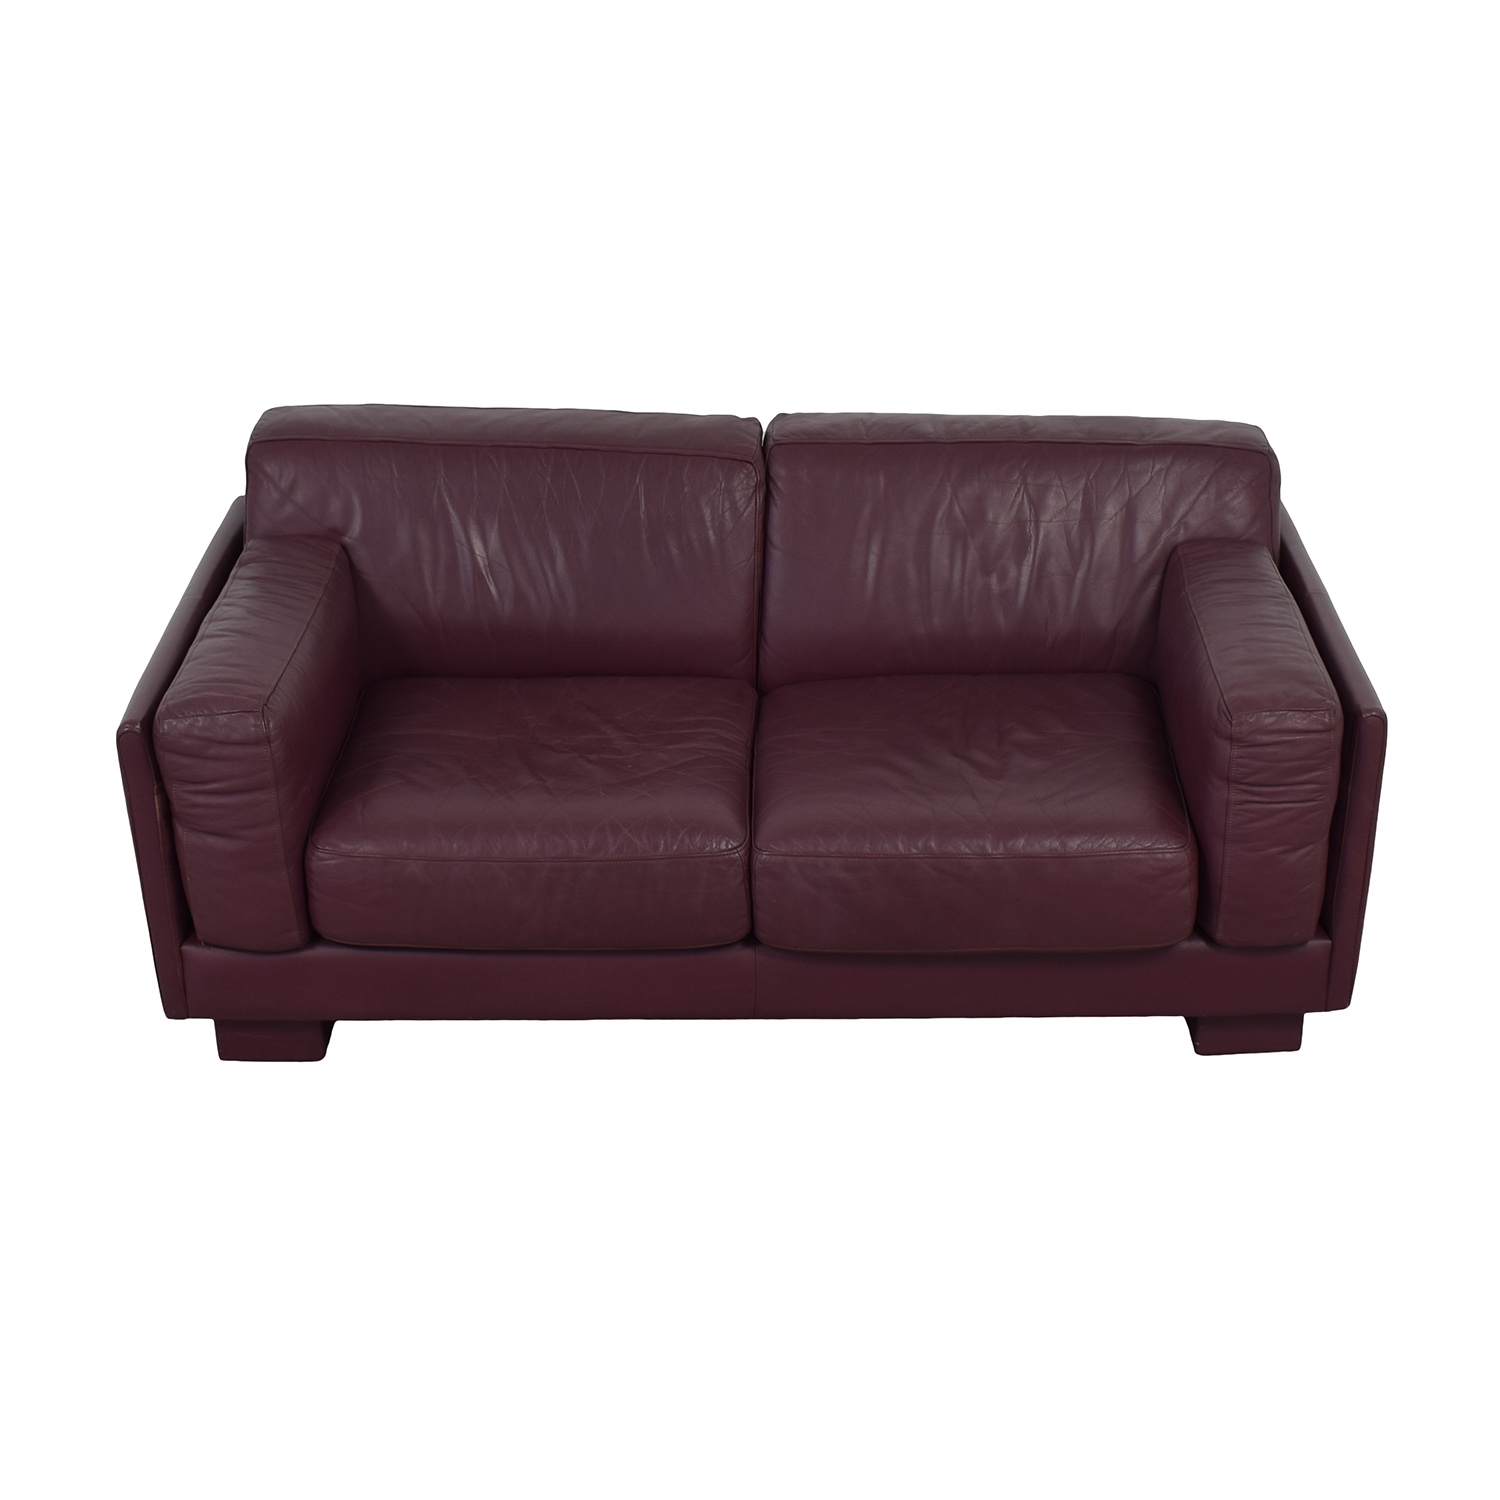 Leather Center Leather Center Burgundy Leather Two-Cushion Loveseat coupon